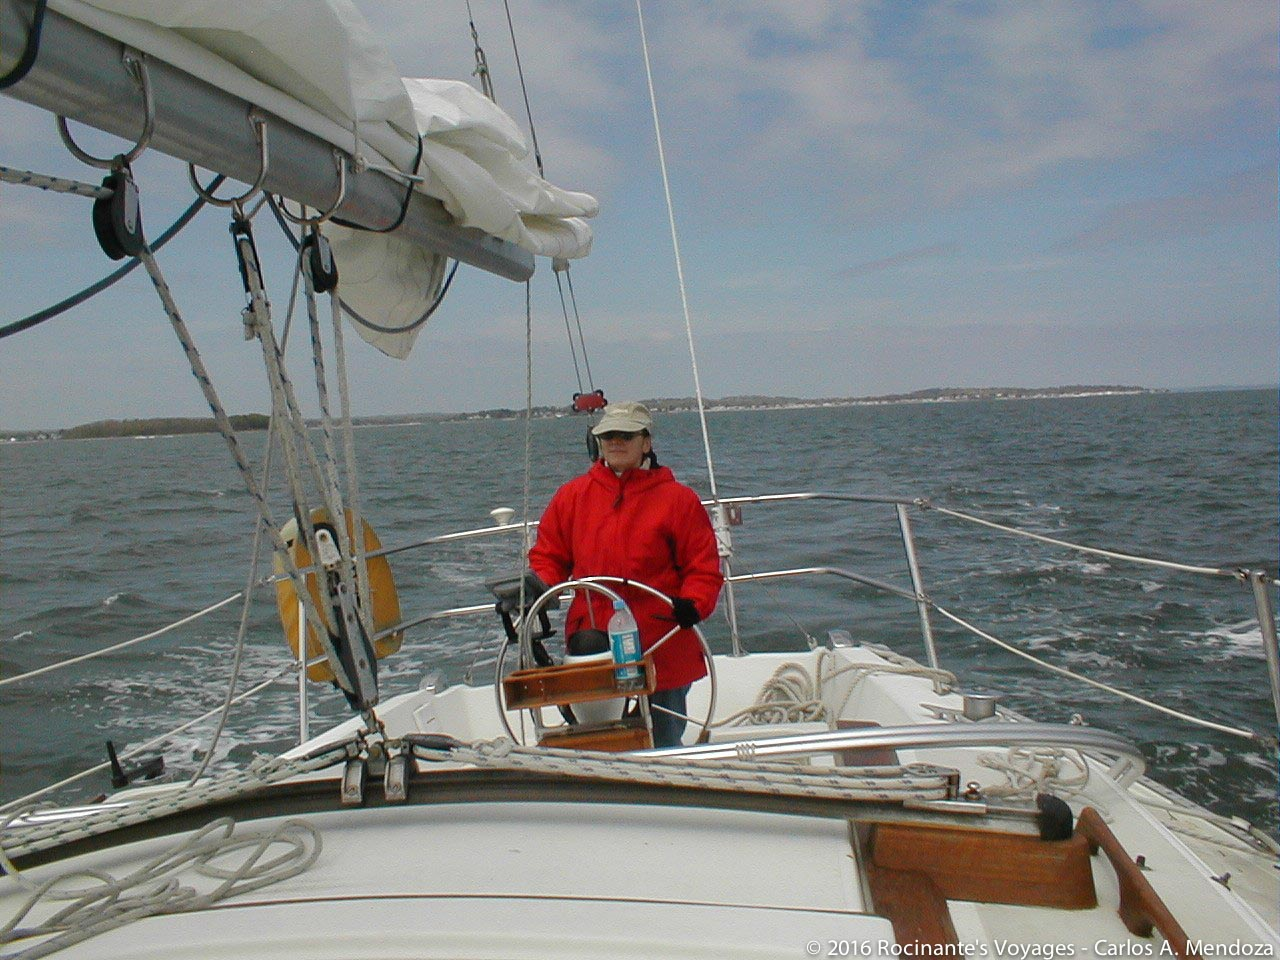 The Admiral at the helm as we head out of Milford Harbor - perfect sailing weather!